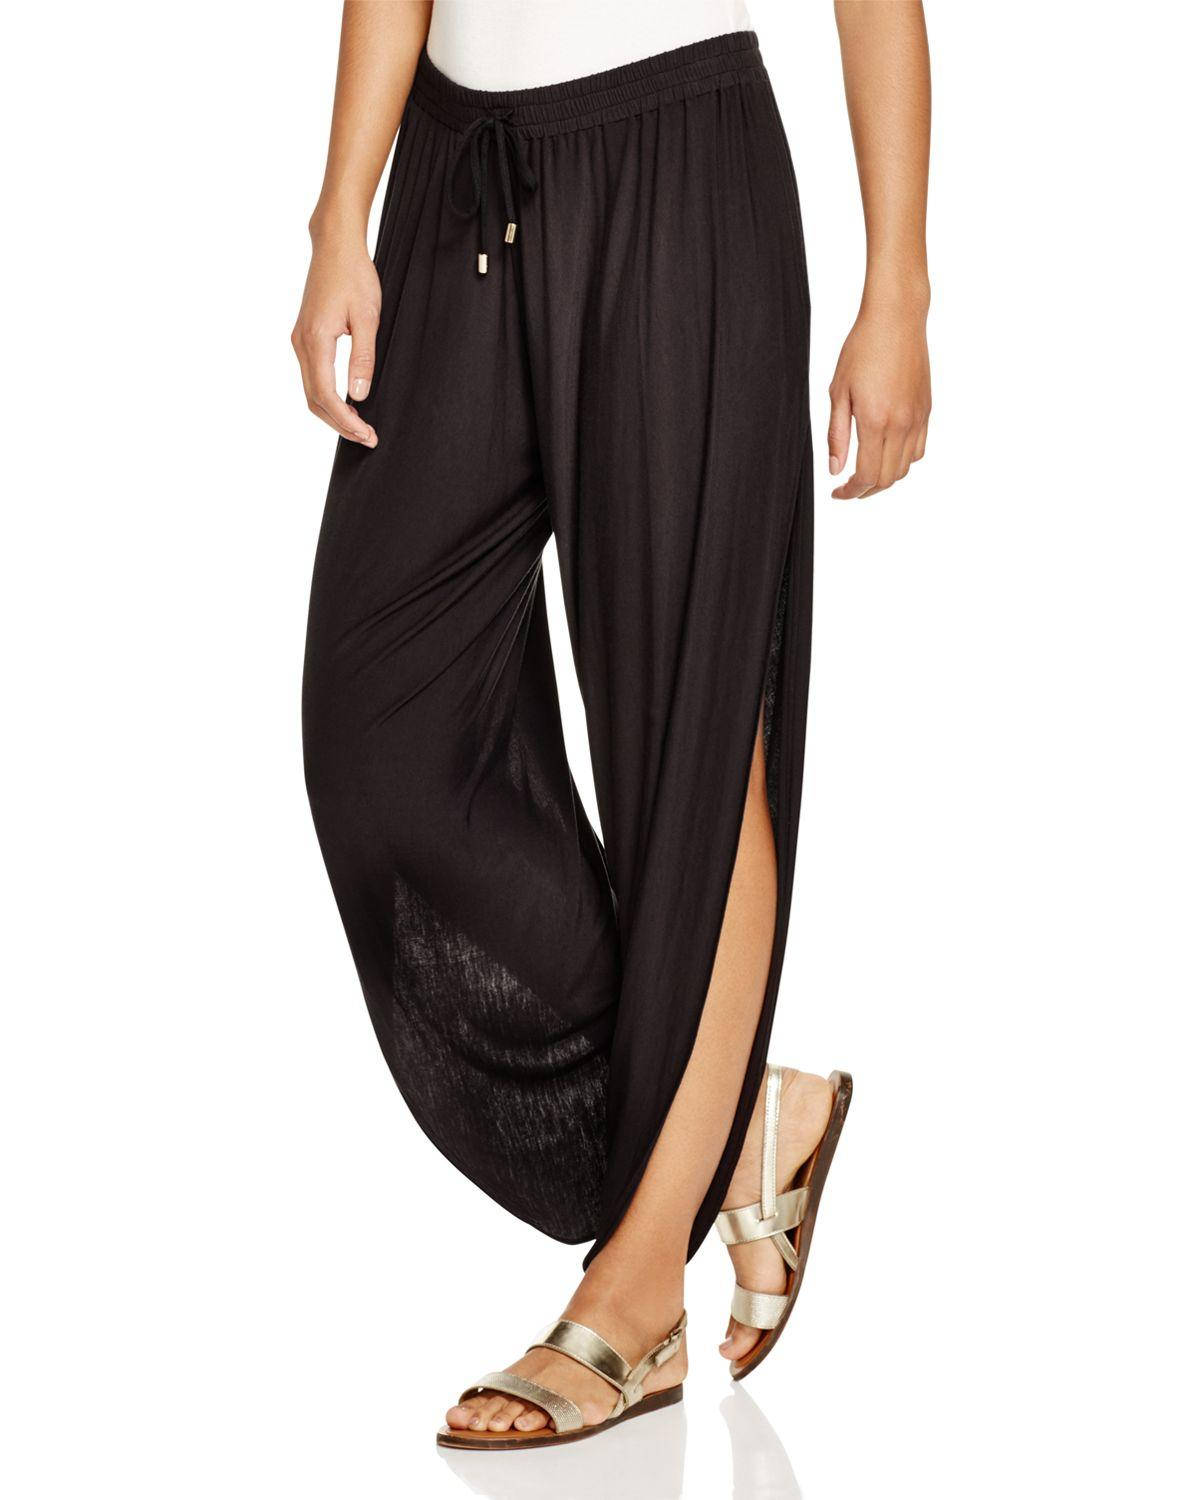 Book Cover Black Jeans : Laundry by shelli segal solid draped swim cover up pants